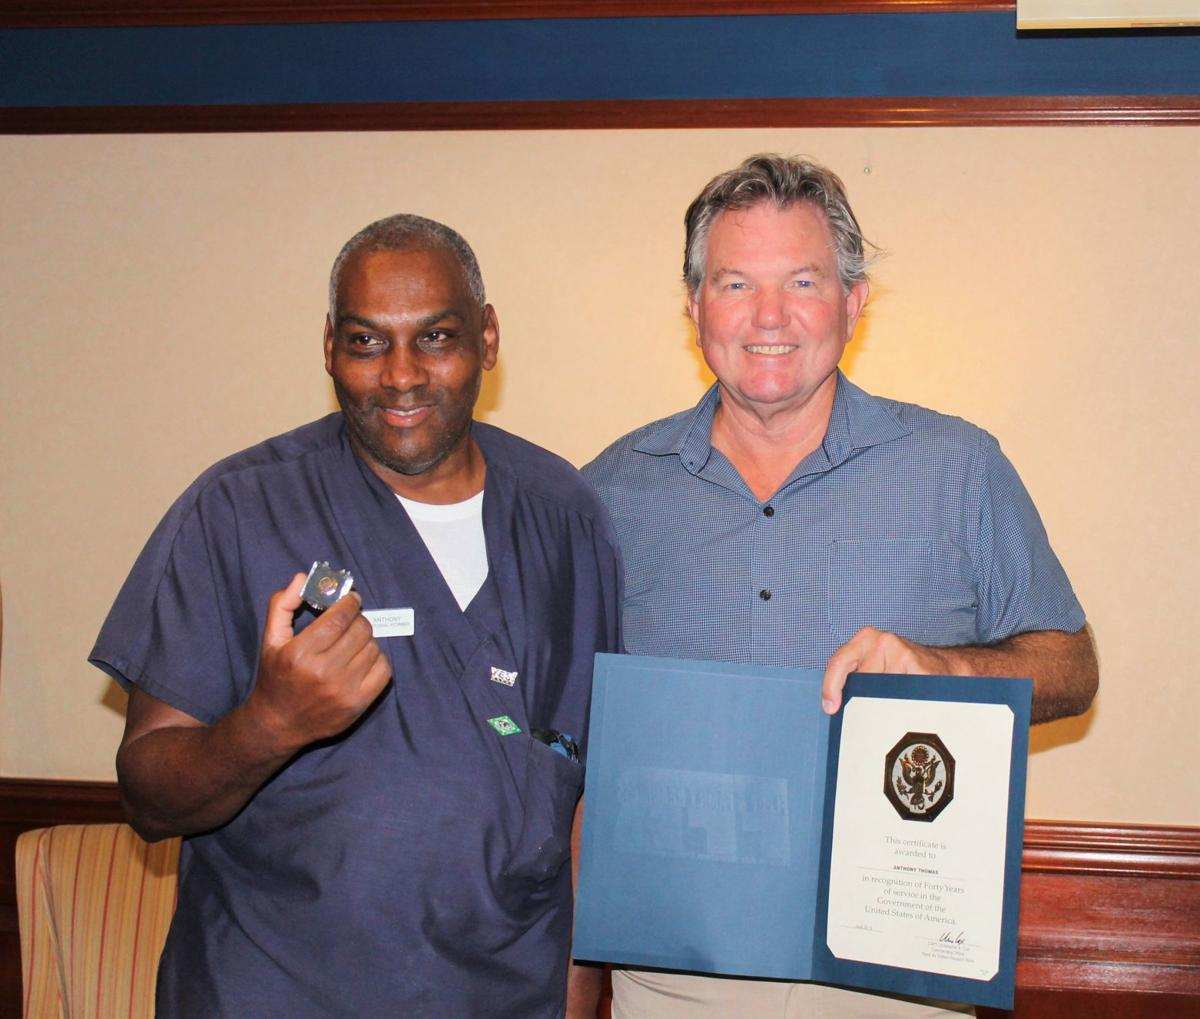 Thomas recognized for 40 years